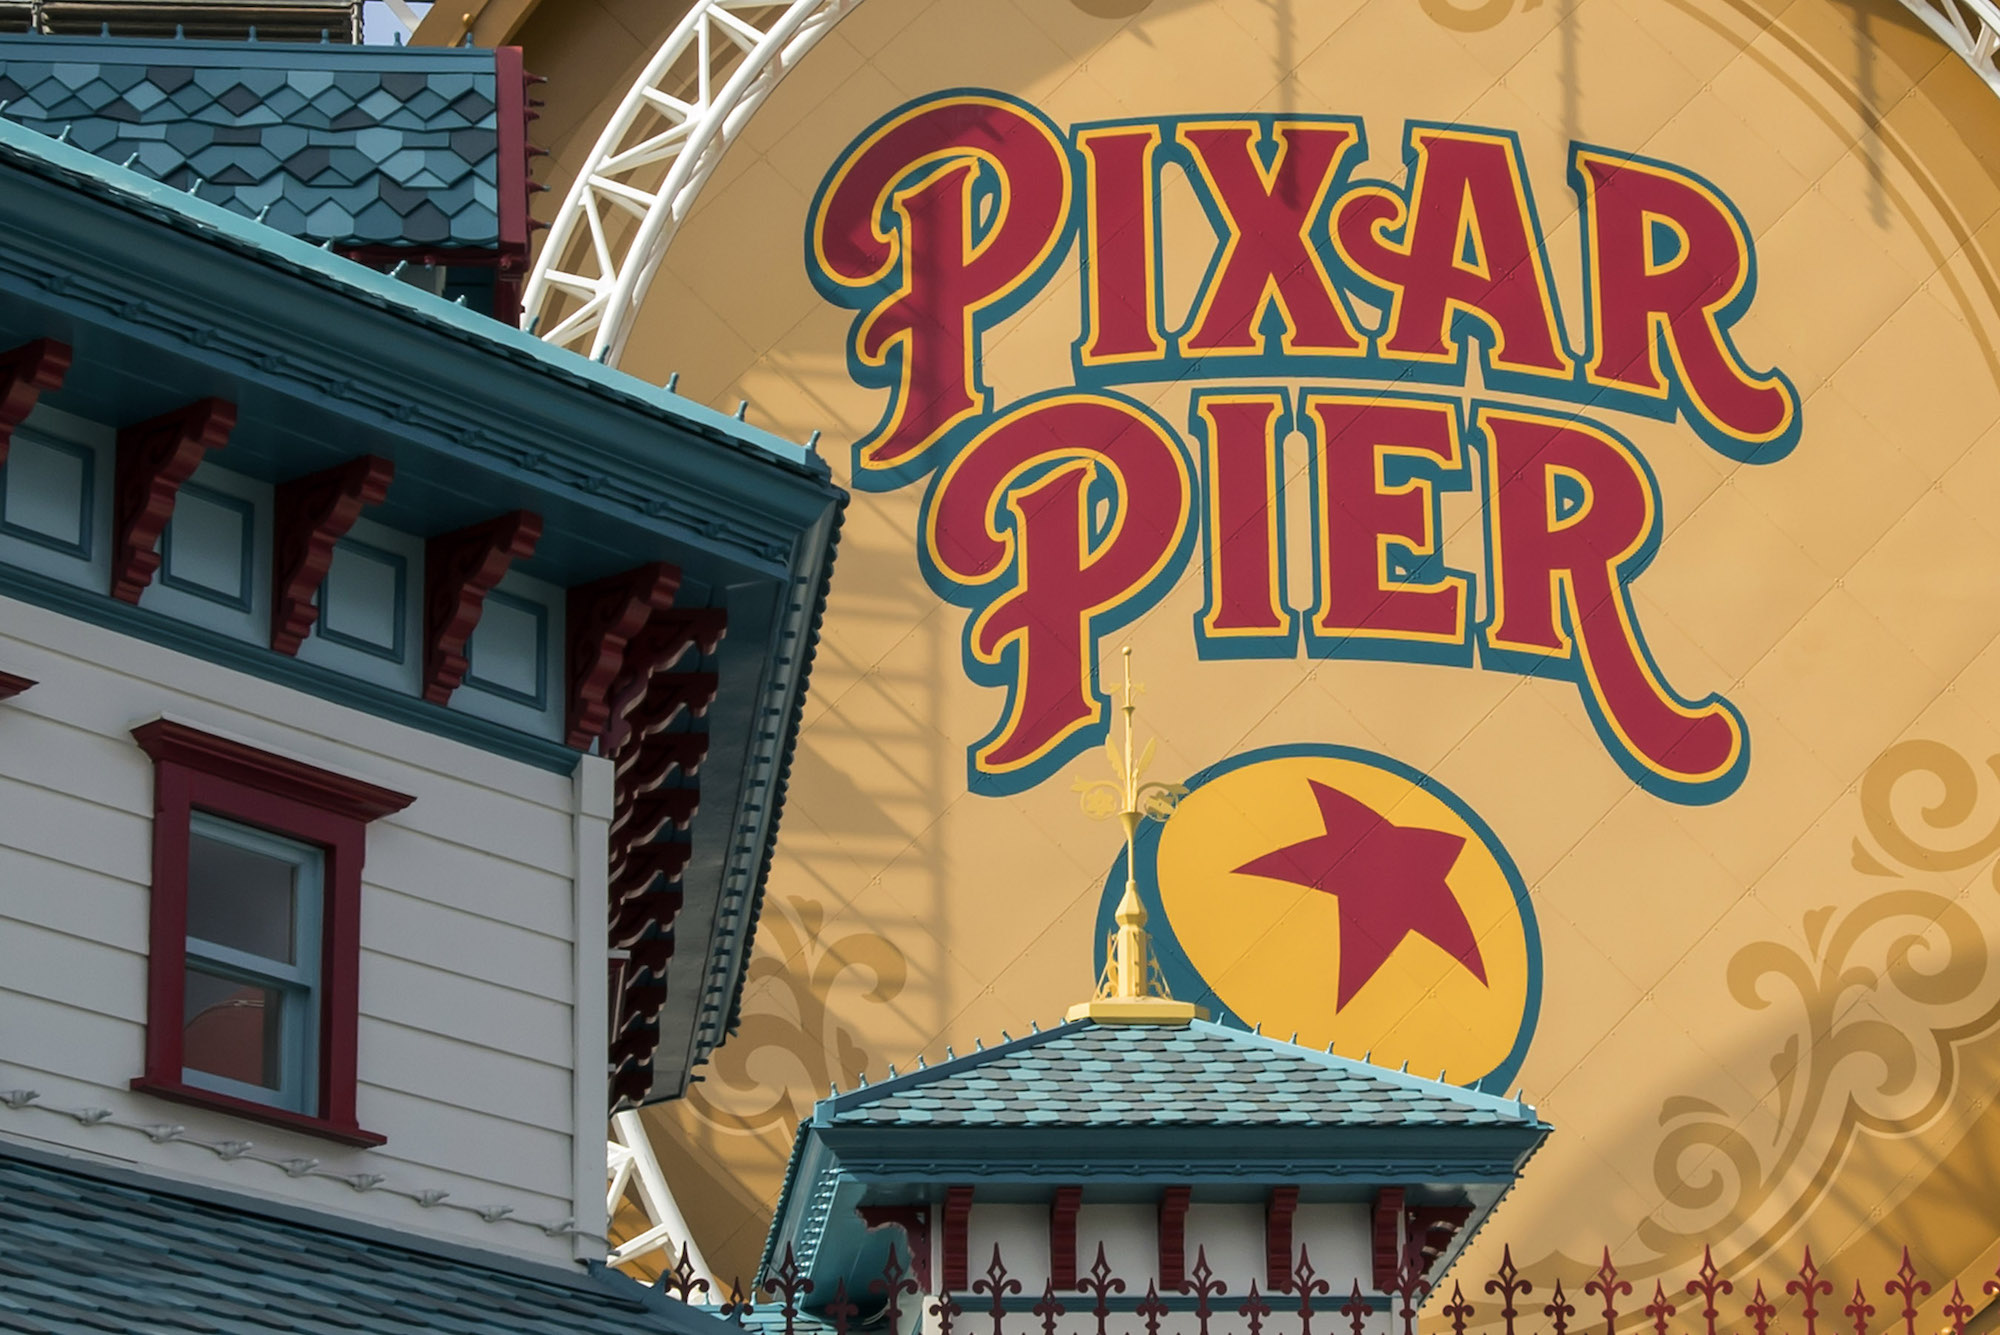 Pixar Pier at Disneyland